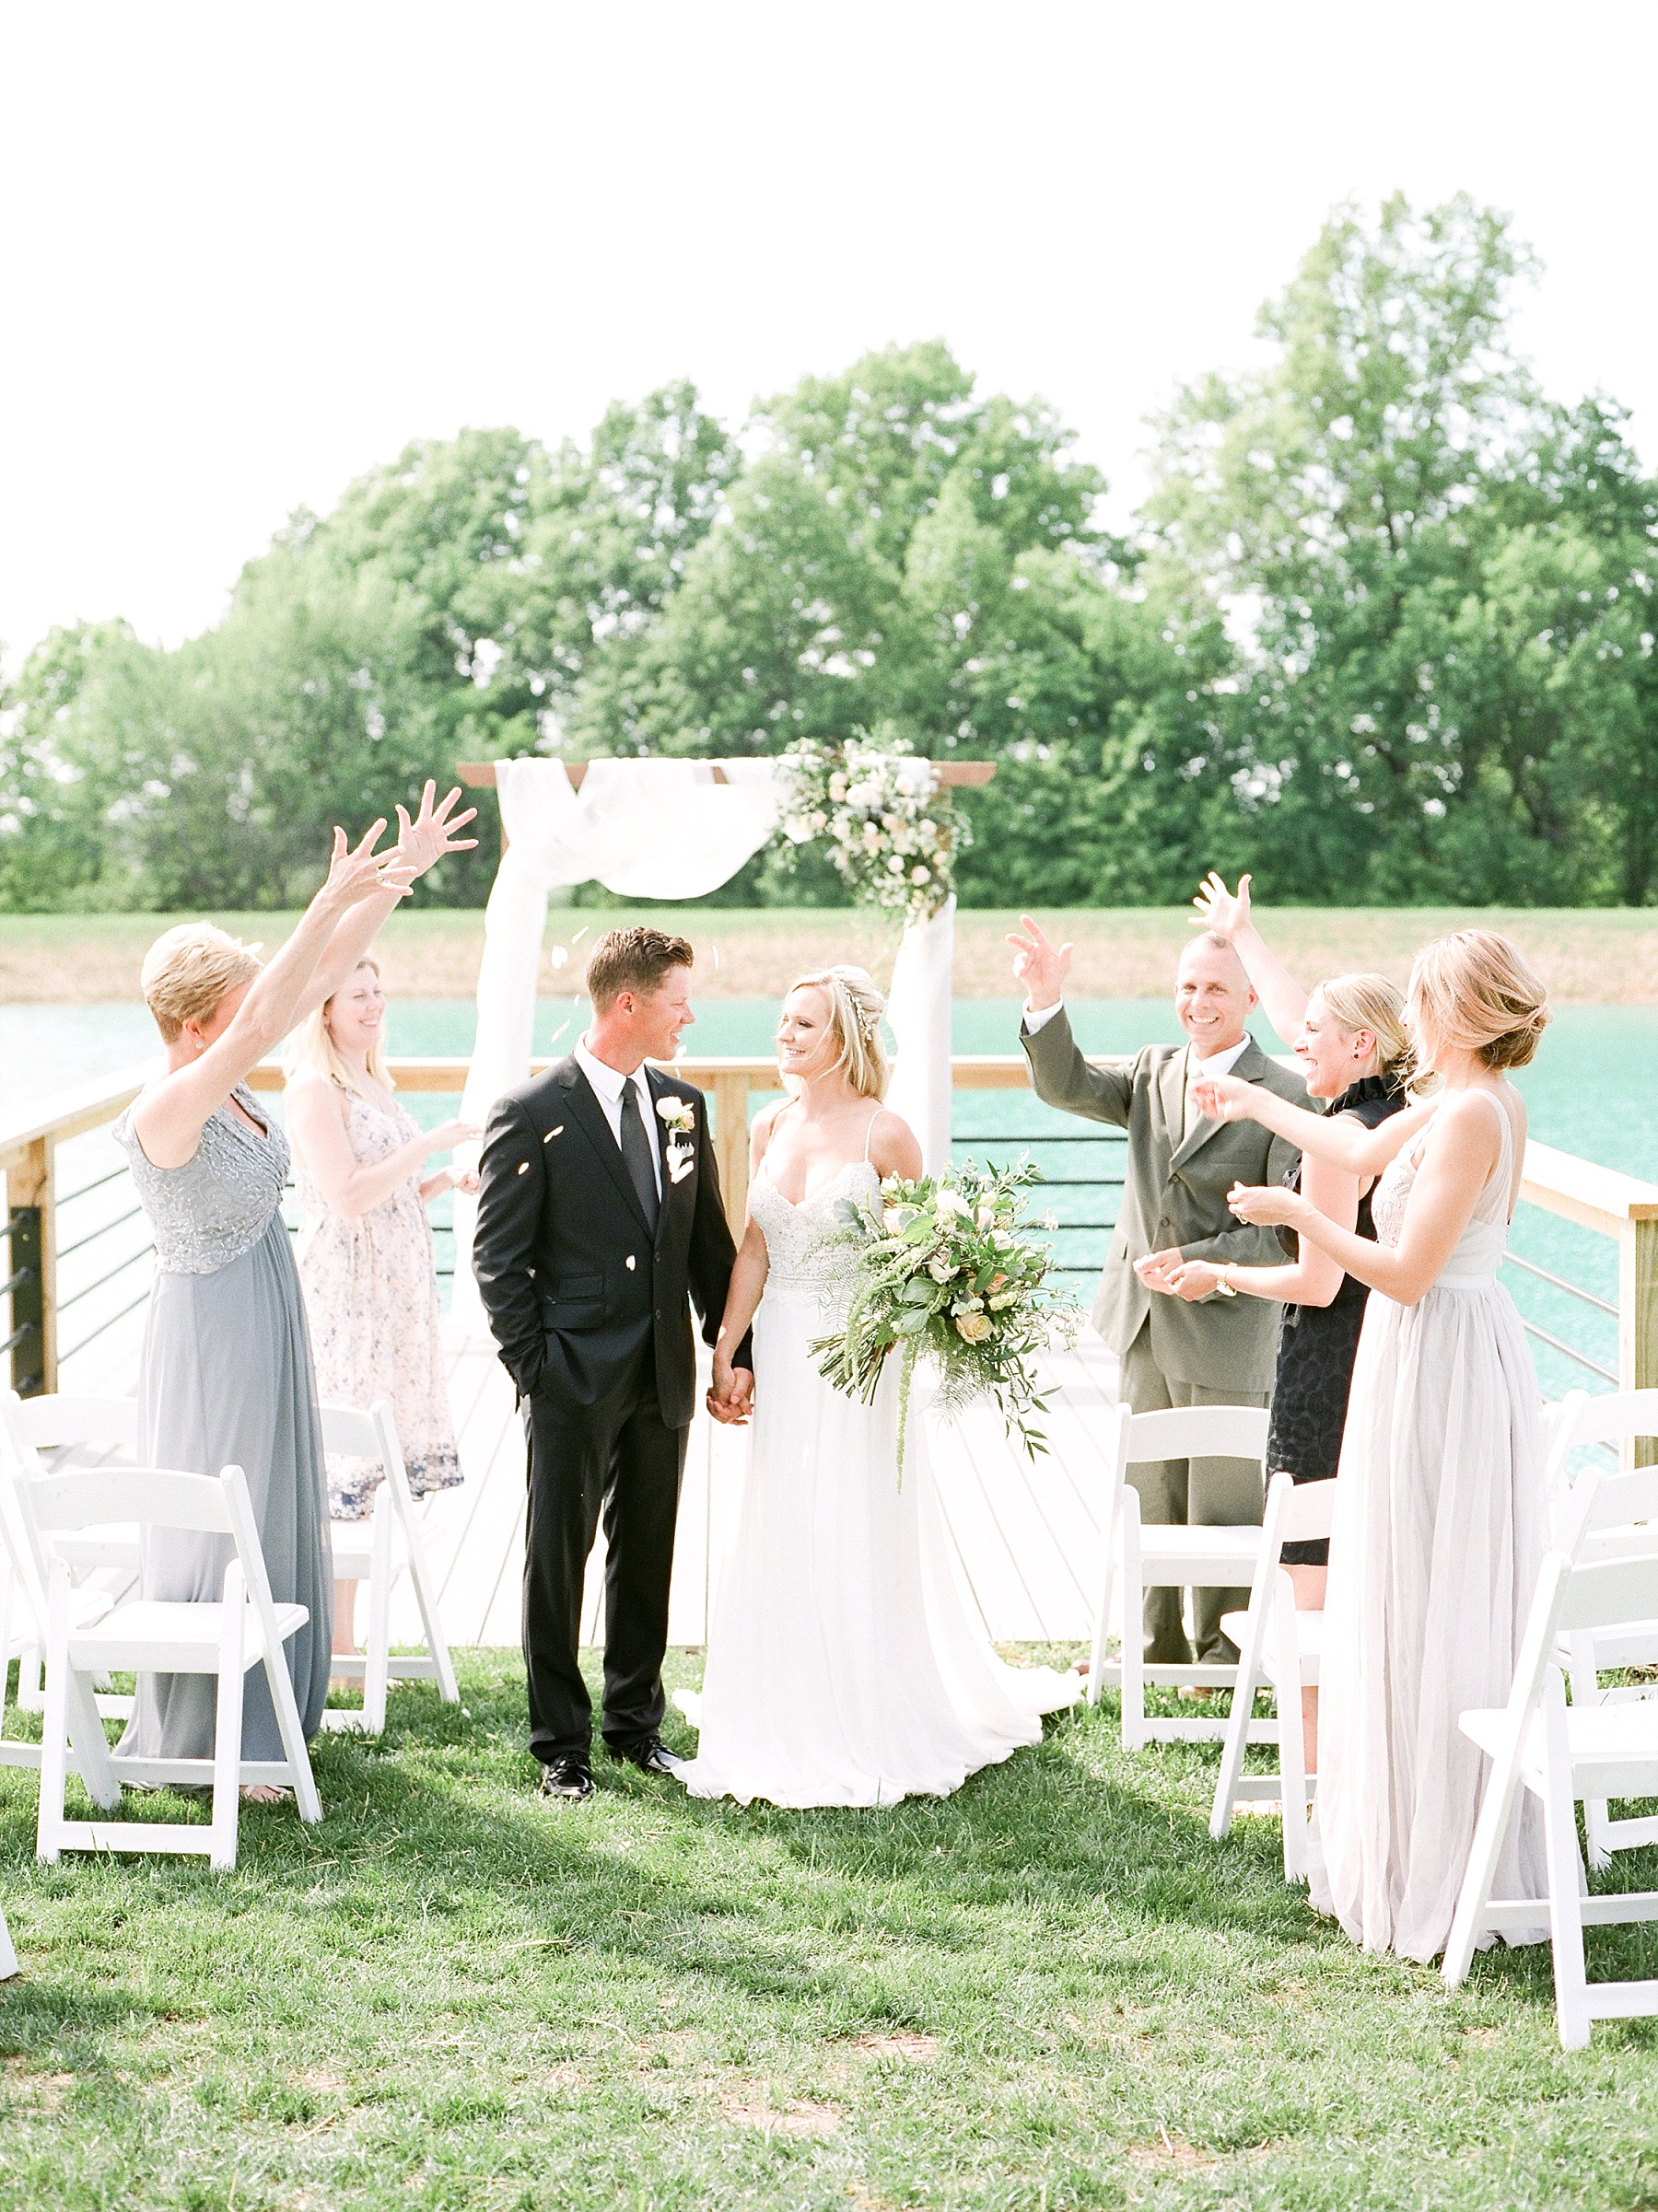 Textural Organic Wedding in All White Venue by Kelsi Kliethermes Wedding Photographer - Missouri, Midwest, and Destinations_0073.jpg